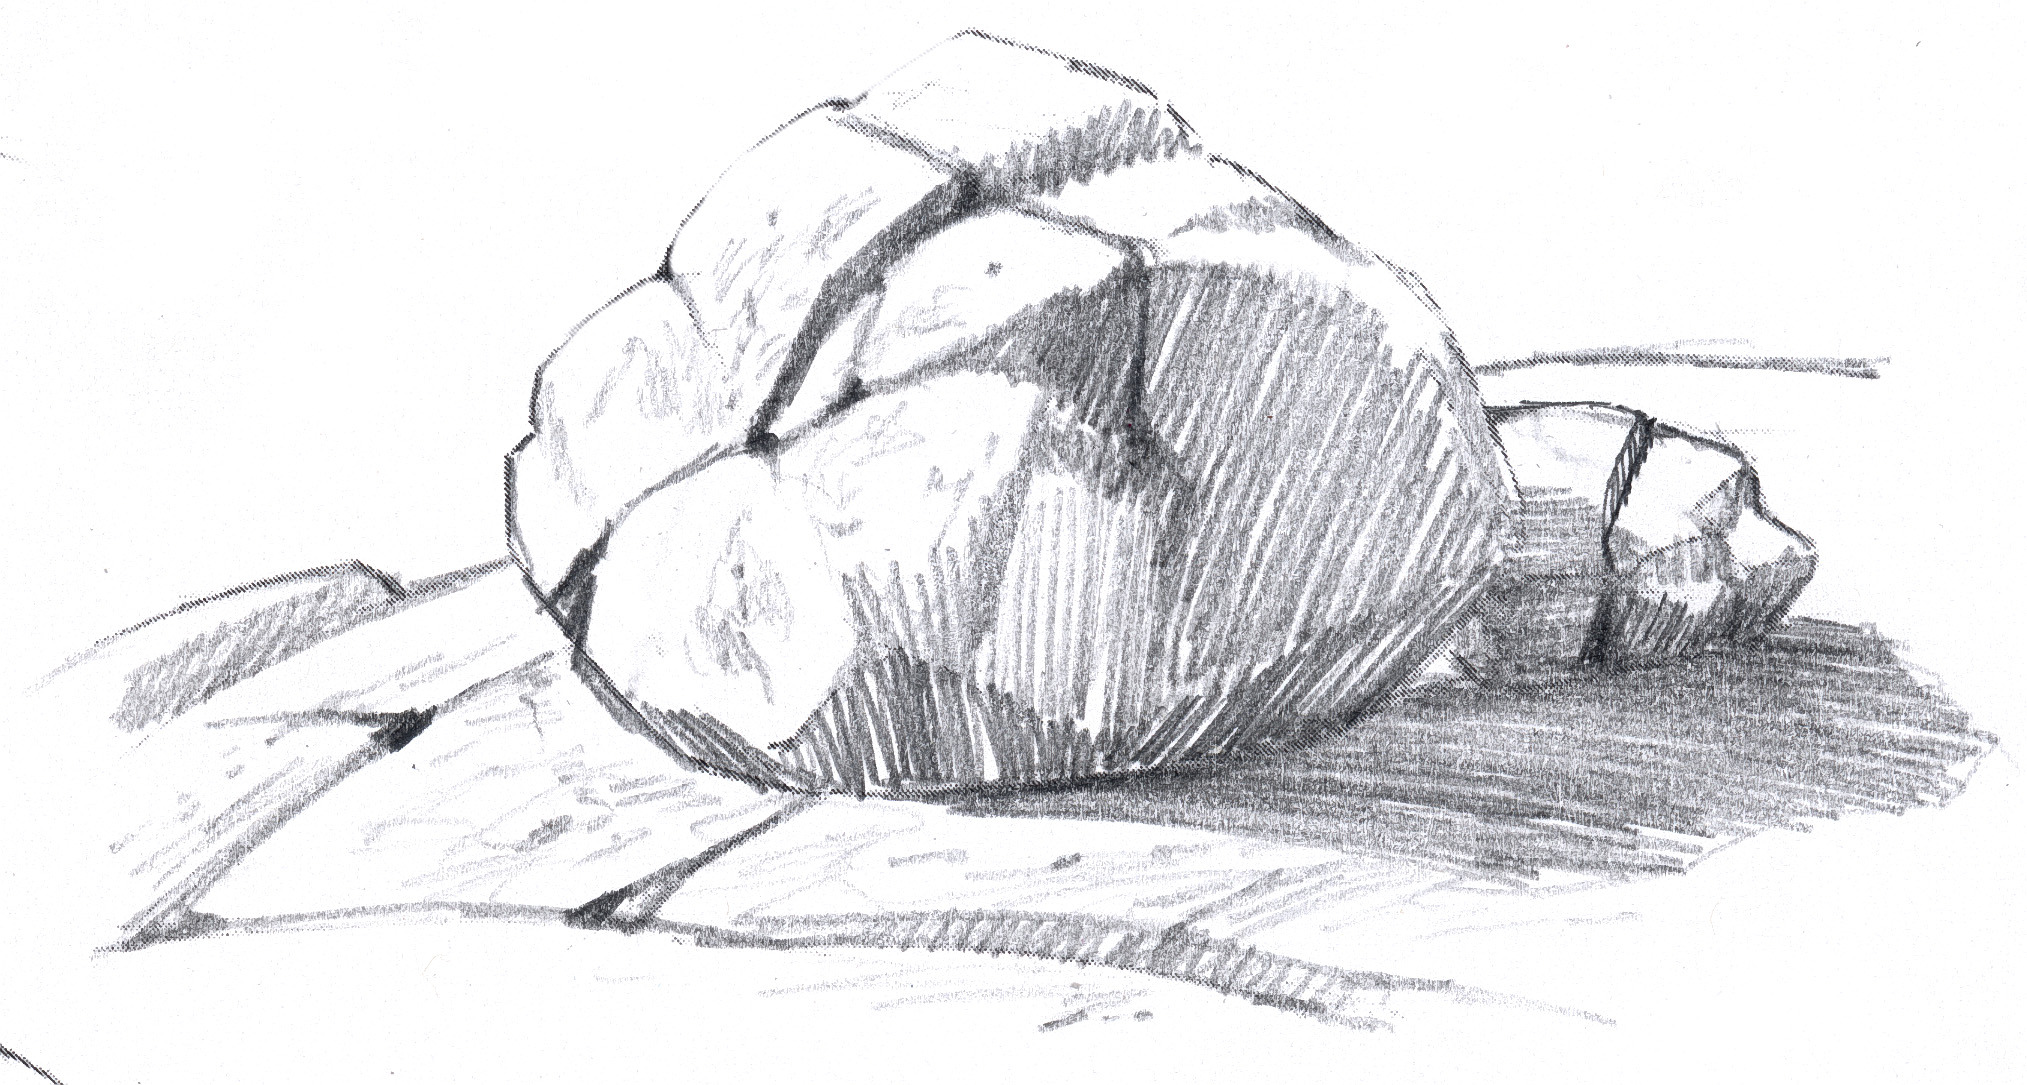 Drawn rock pencil drawing Arts and Boulder Granite Granite